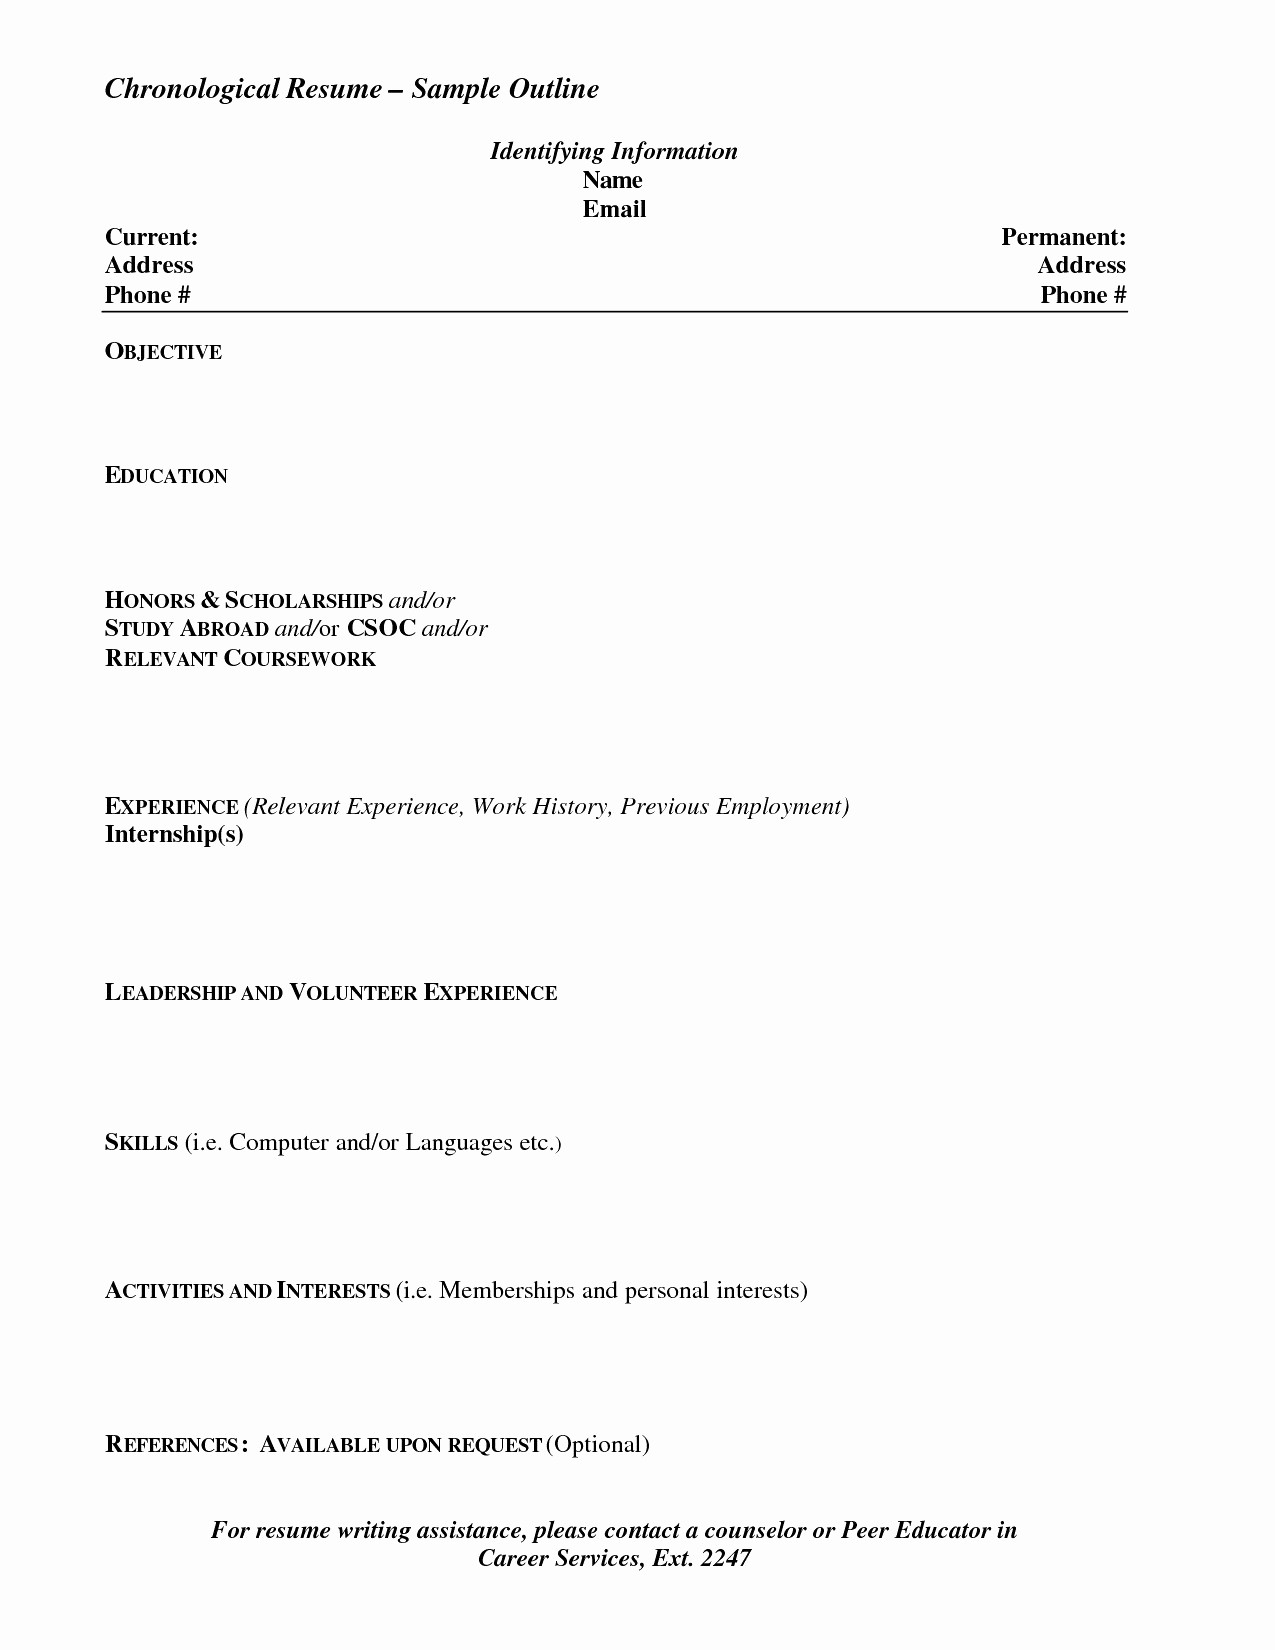 letter of intent to purchase business template free collection